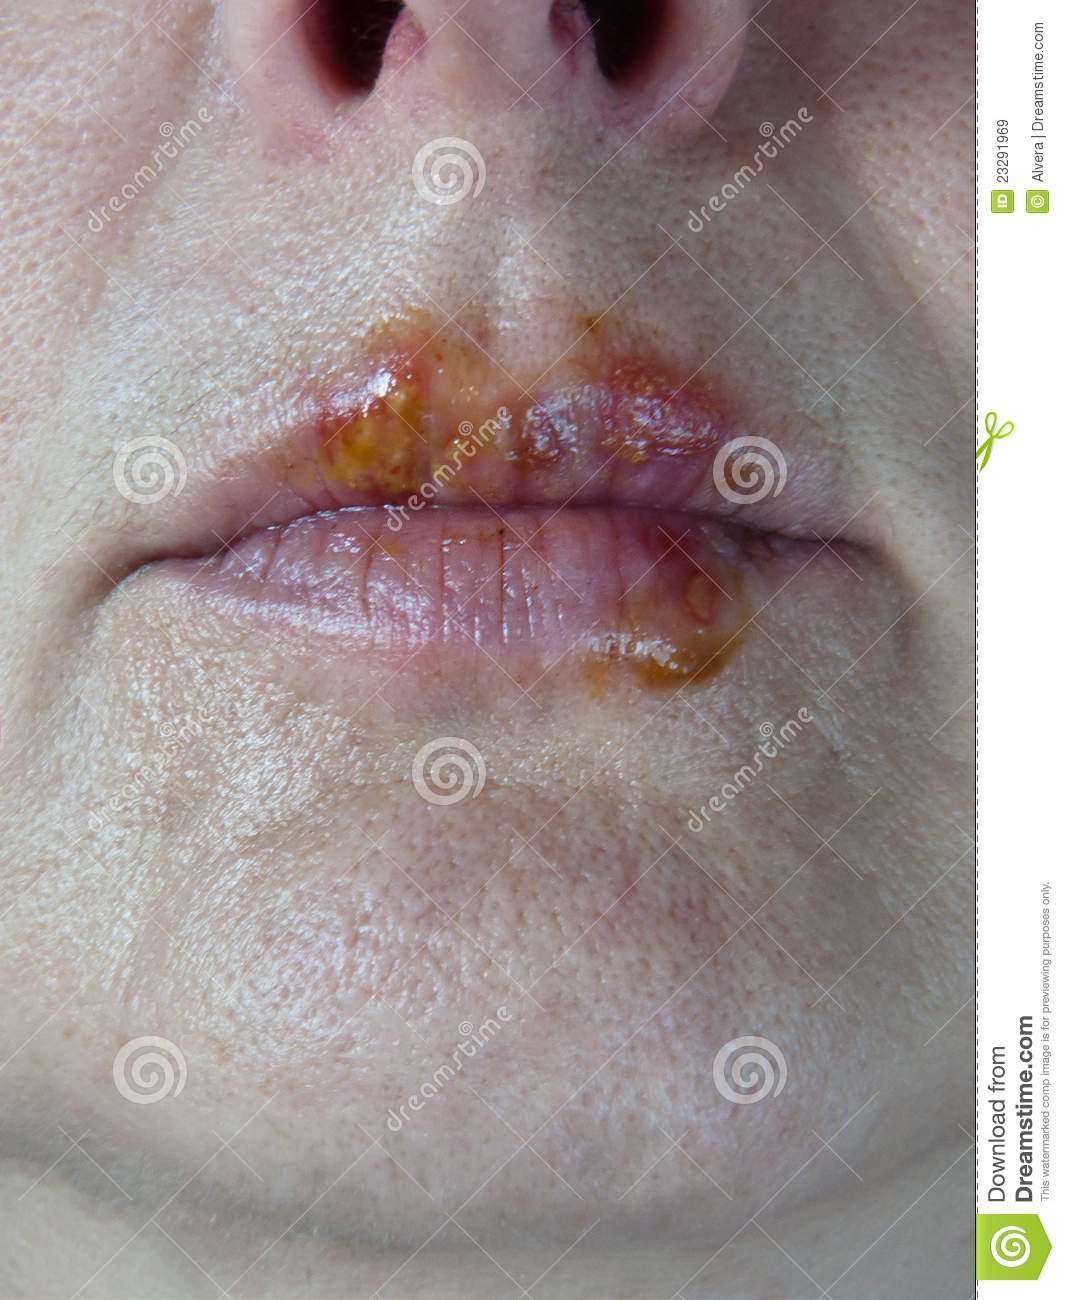 Herpes Mouth Sores Lips Virus Royalty Free Stock Images ...